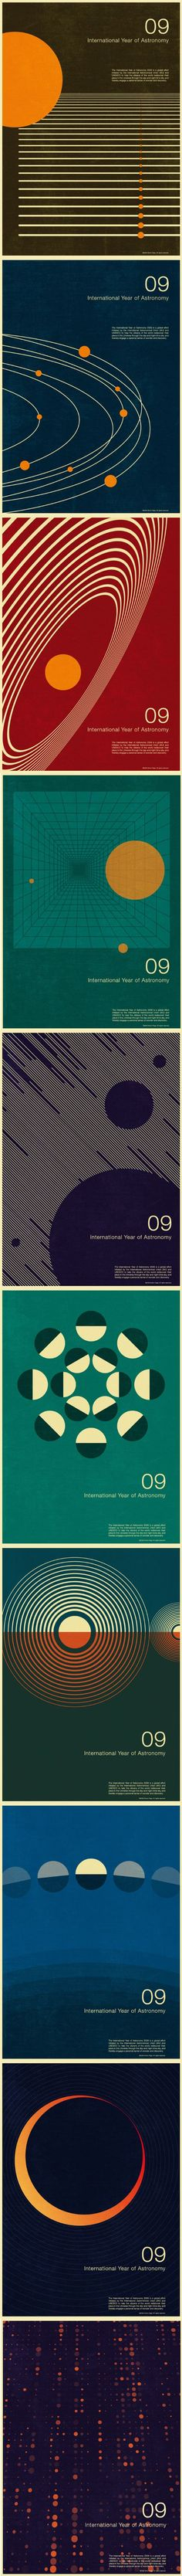 International Year of Astronomy print series, Simon C Page, 2009: